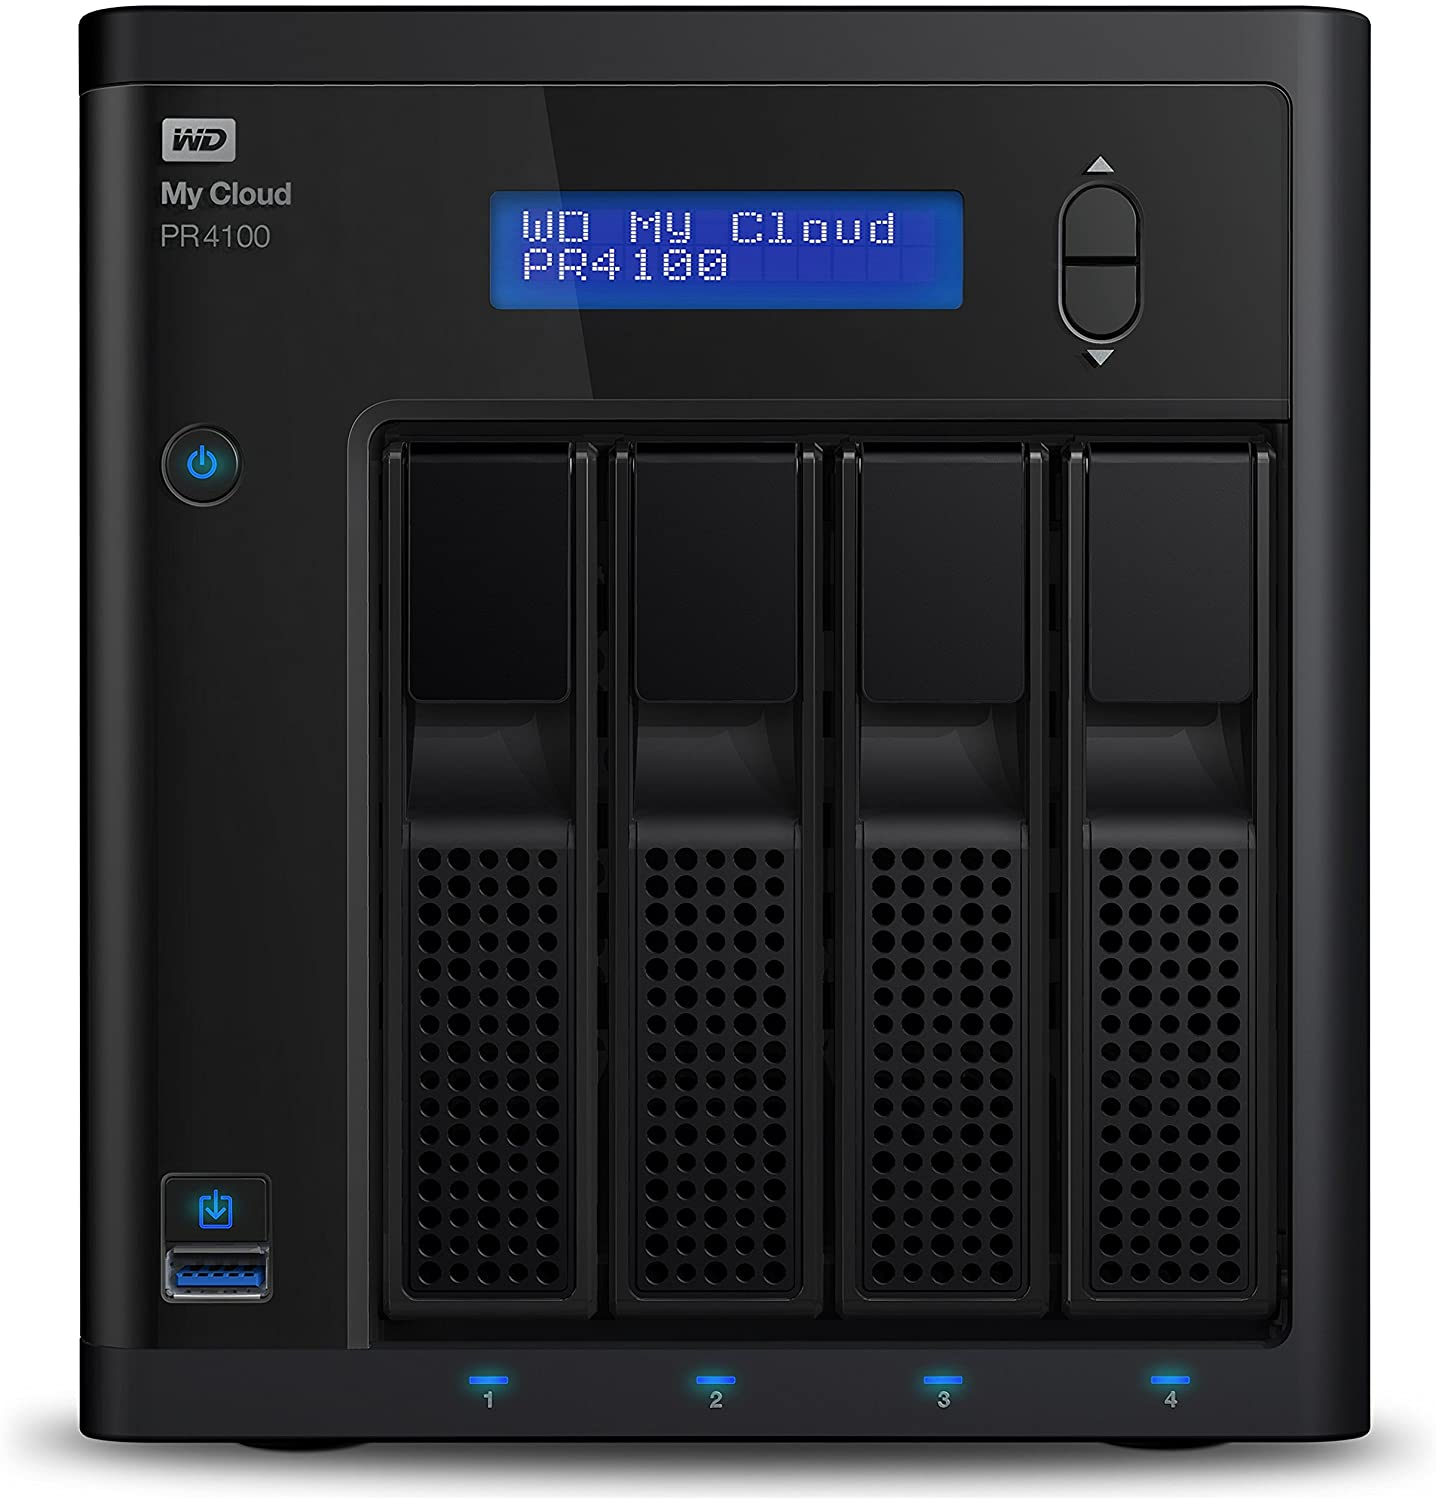 WD My Cloud Pro Series PR4100 - Almacenamiento en Red (NAS) de 40 TB y Servidor Multimedia con transcodificación